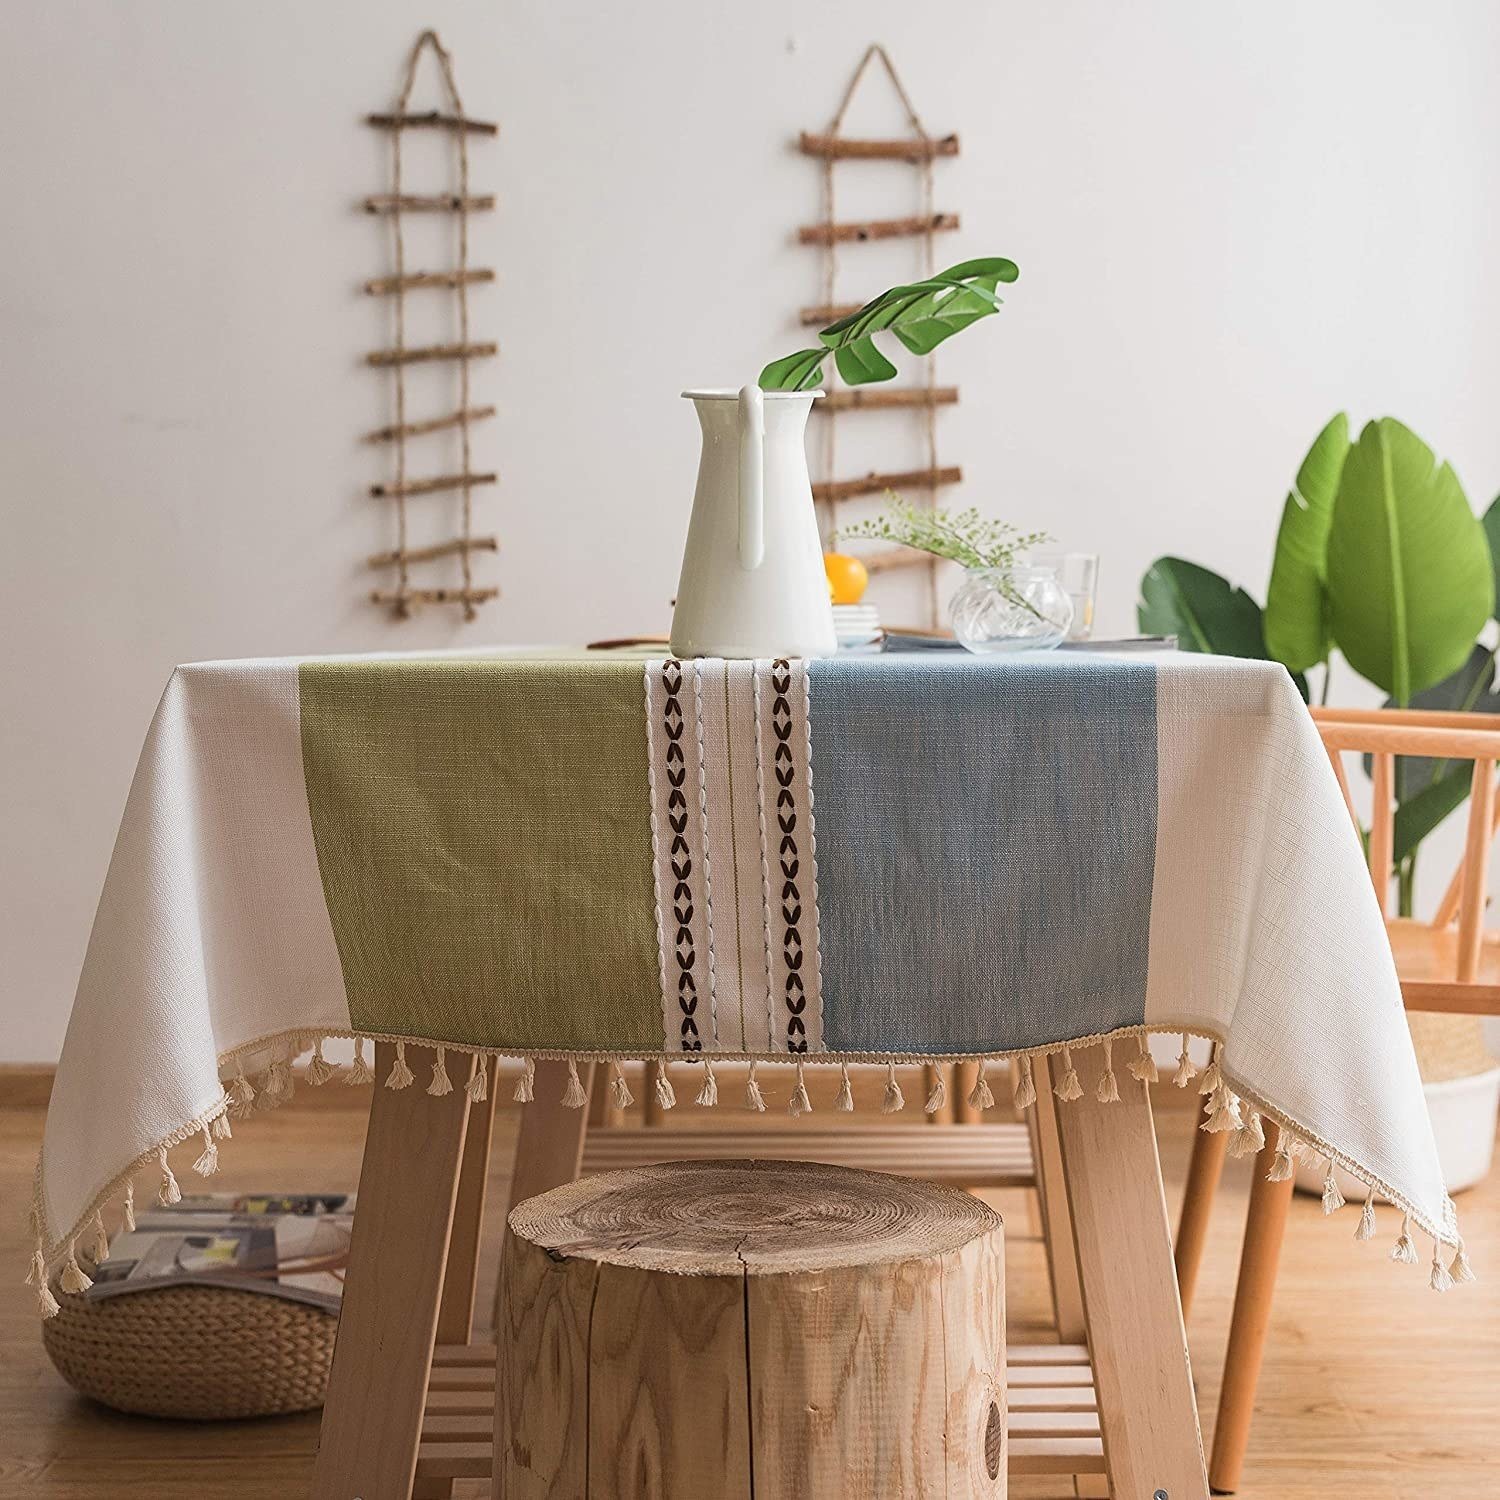 The tablecloth in green and blue with fringes and embroidery